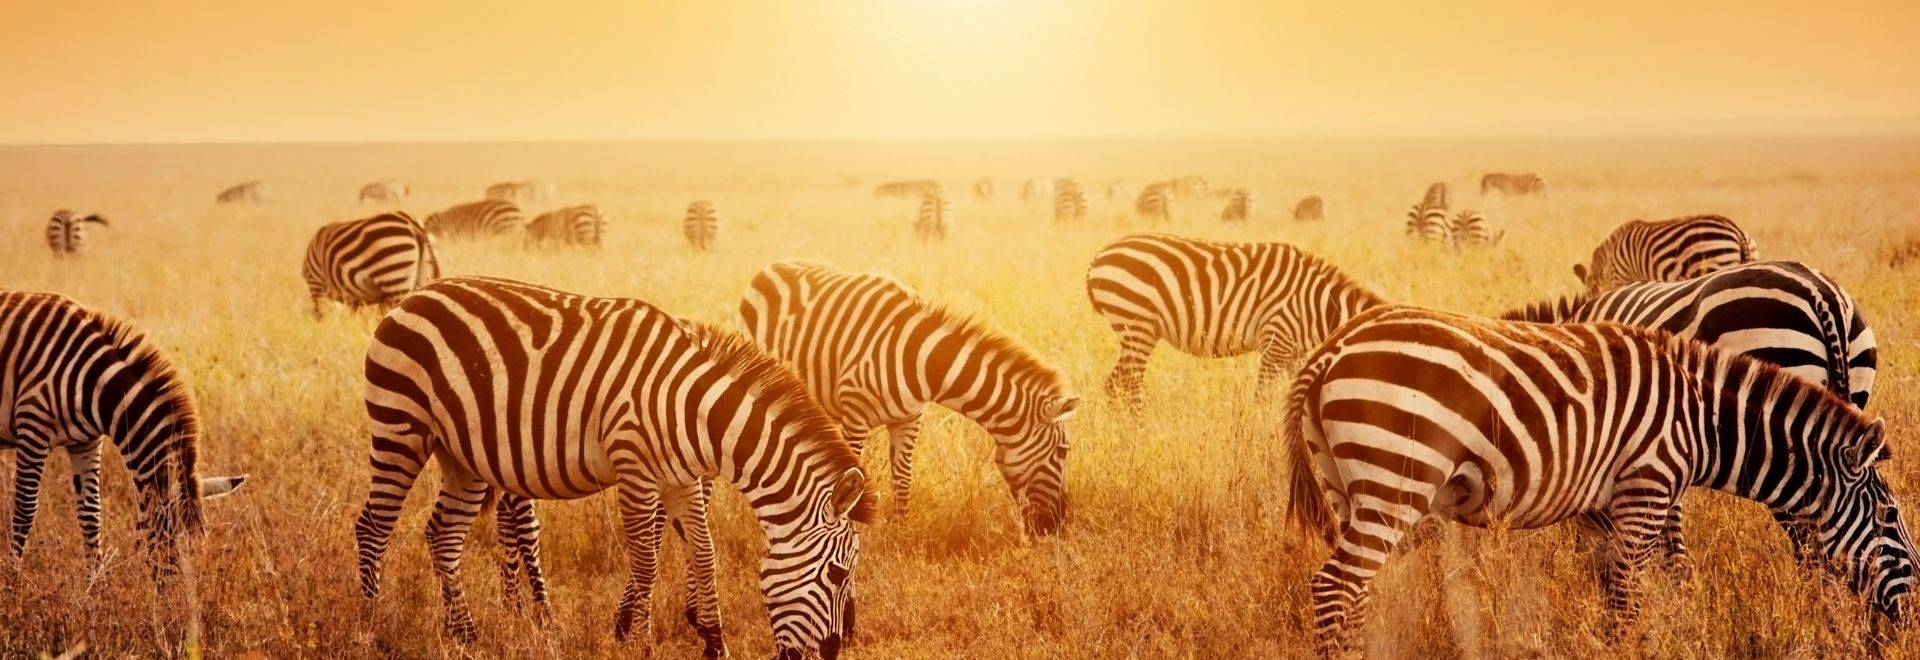 Shutterstock 173186834 Zebras At Sunset